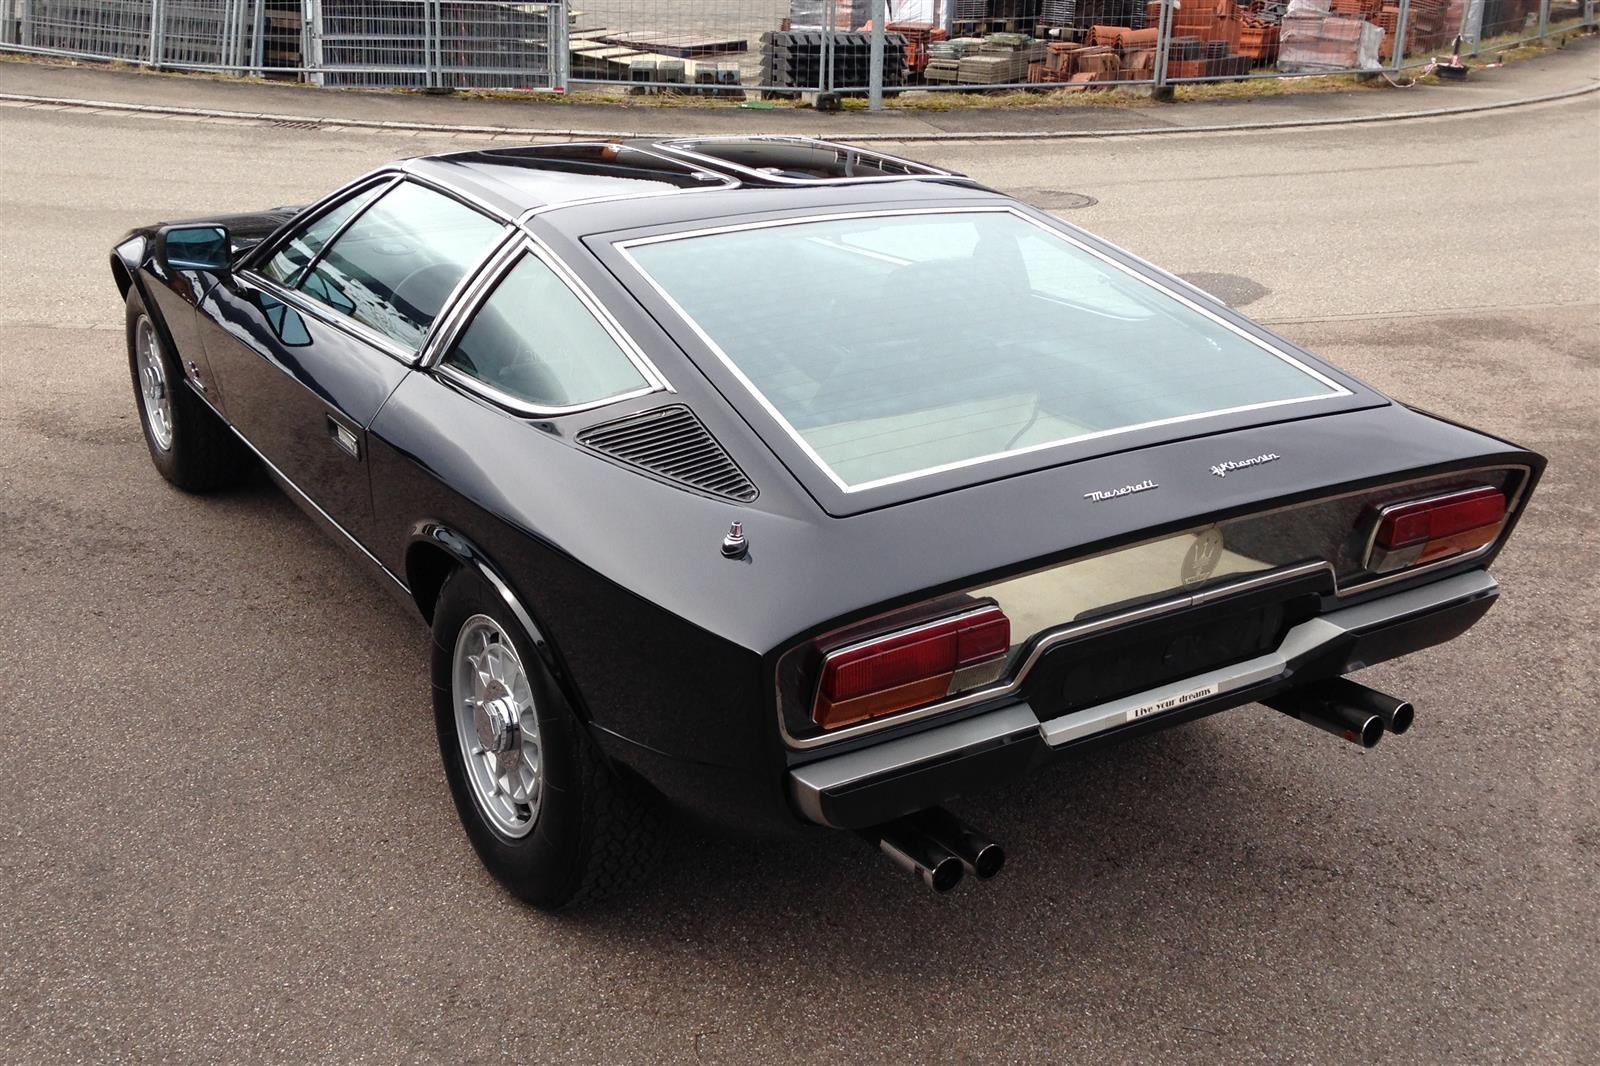 1977 Maserati Khamsin T-Top - Open One Off For Sale (picture 4 of 6)